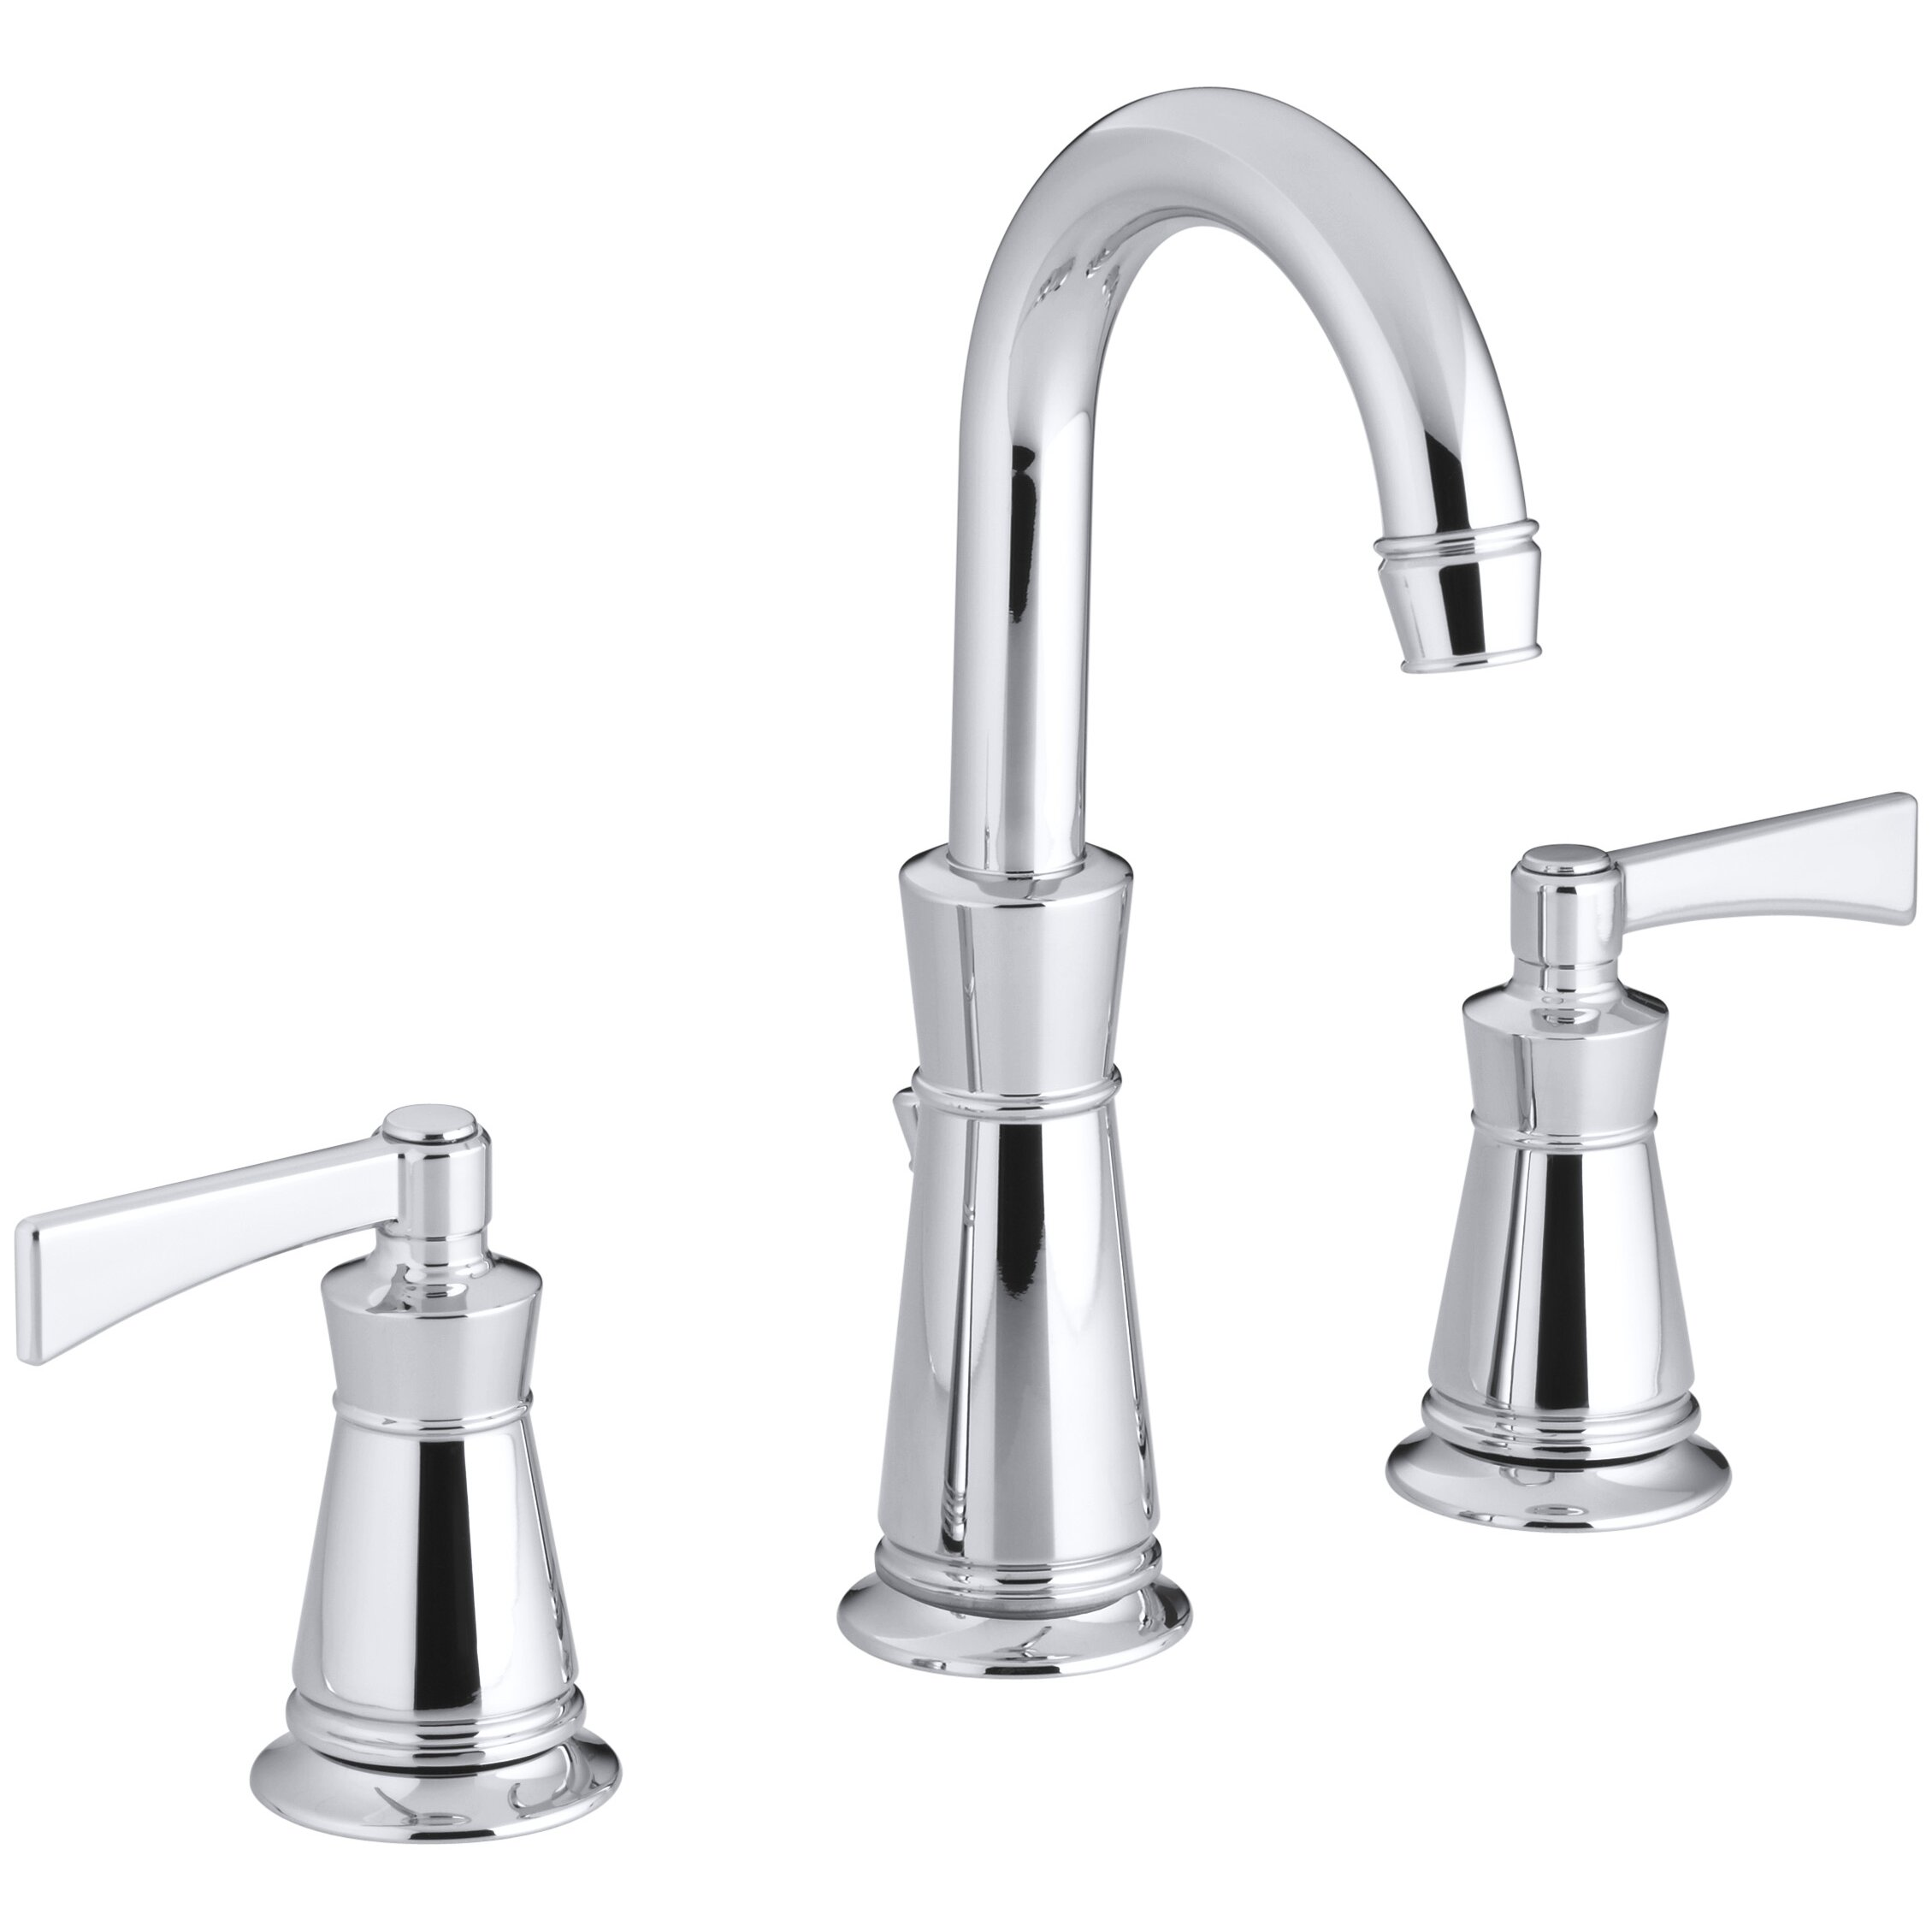 Kohler Faucet Reviews : Kohler Kohler Archer Bathroom Faucet & Reviews Wayfair Supply